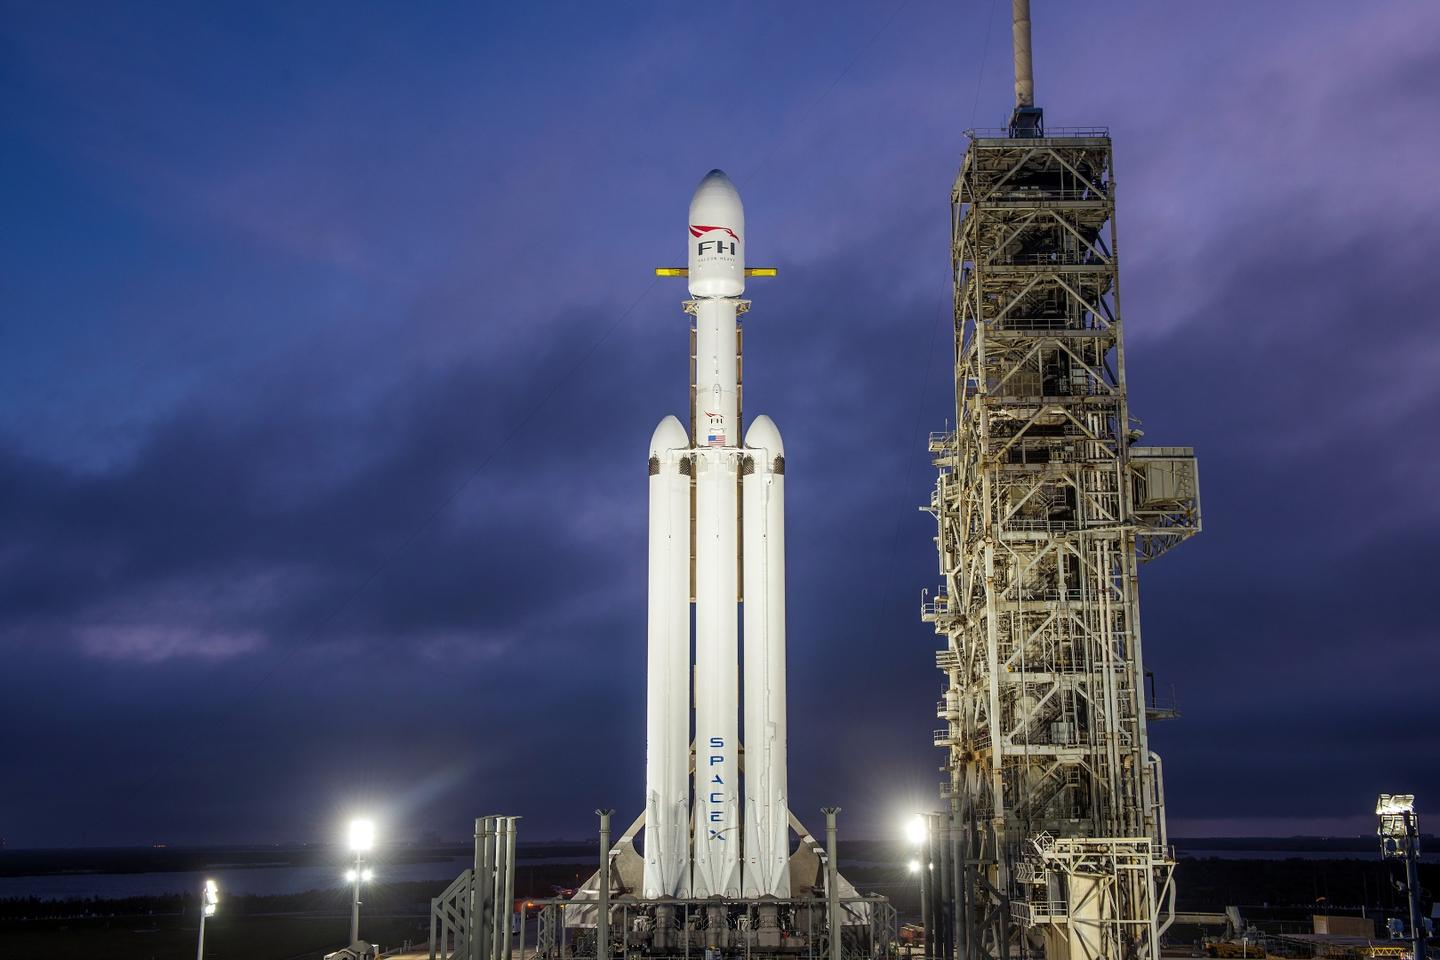 SpaceX's Falcon Heavy rocket was built to carry humans into deep space